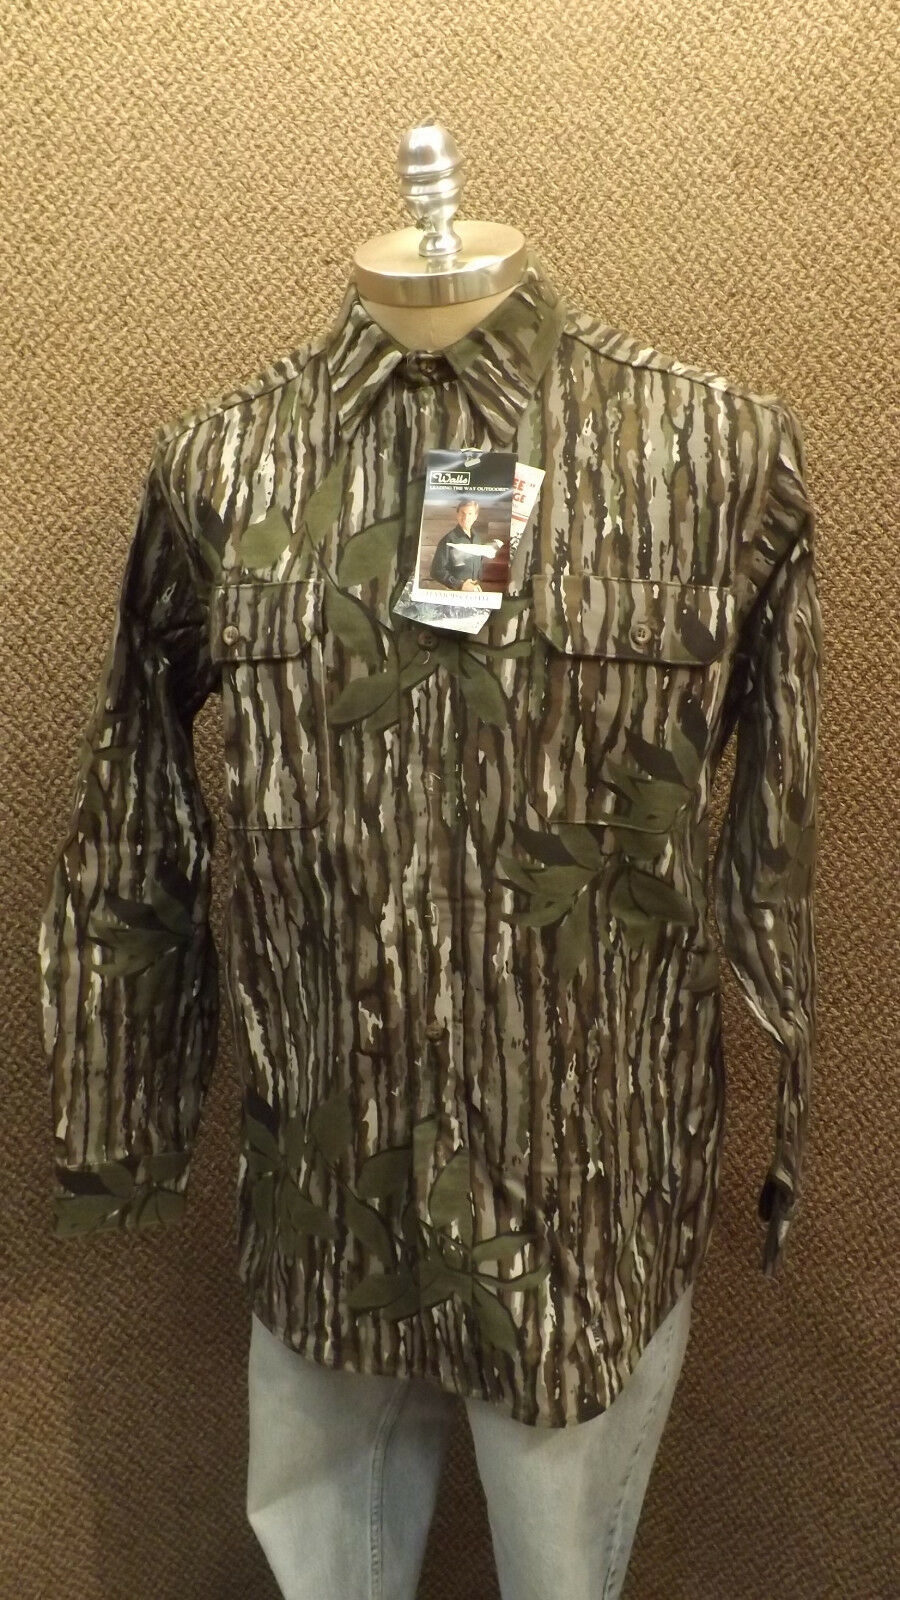 Vtg NEW Walls Realtree Camo  Hunting Shirt  Cotton Chamois NOS sz M Tall USA Made  outlet store